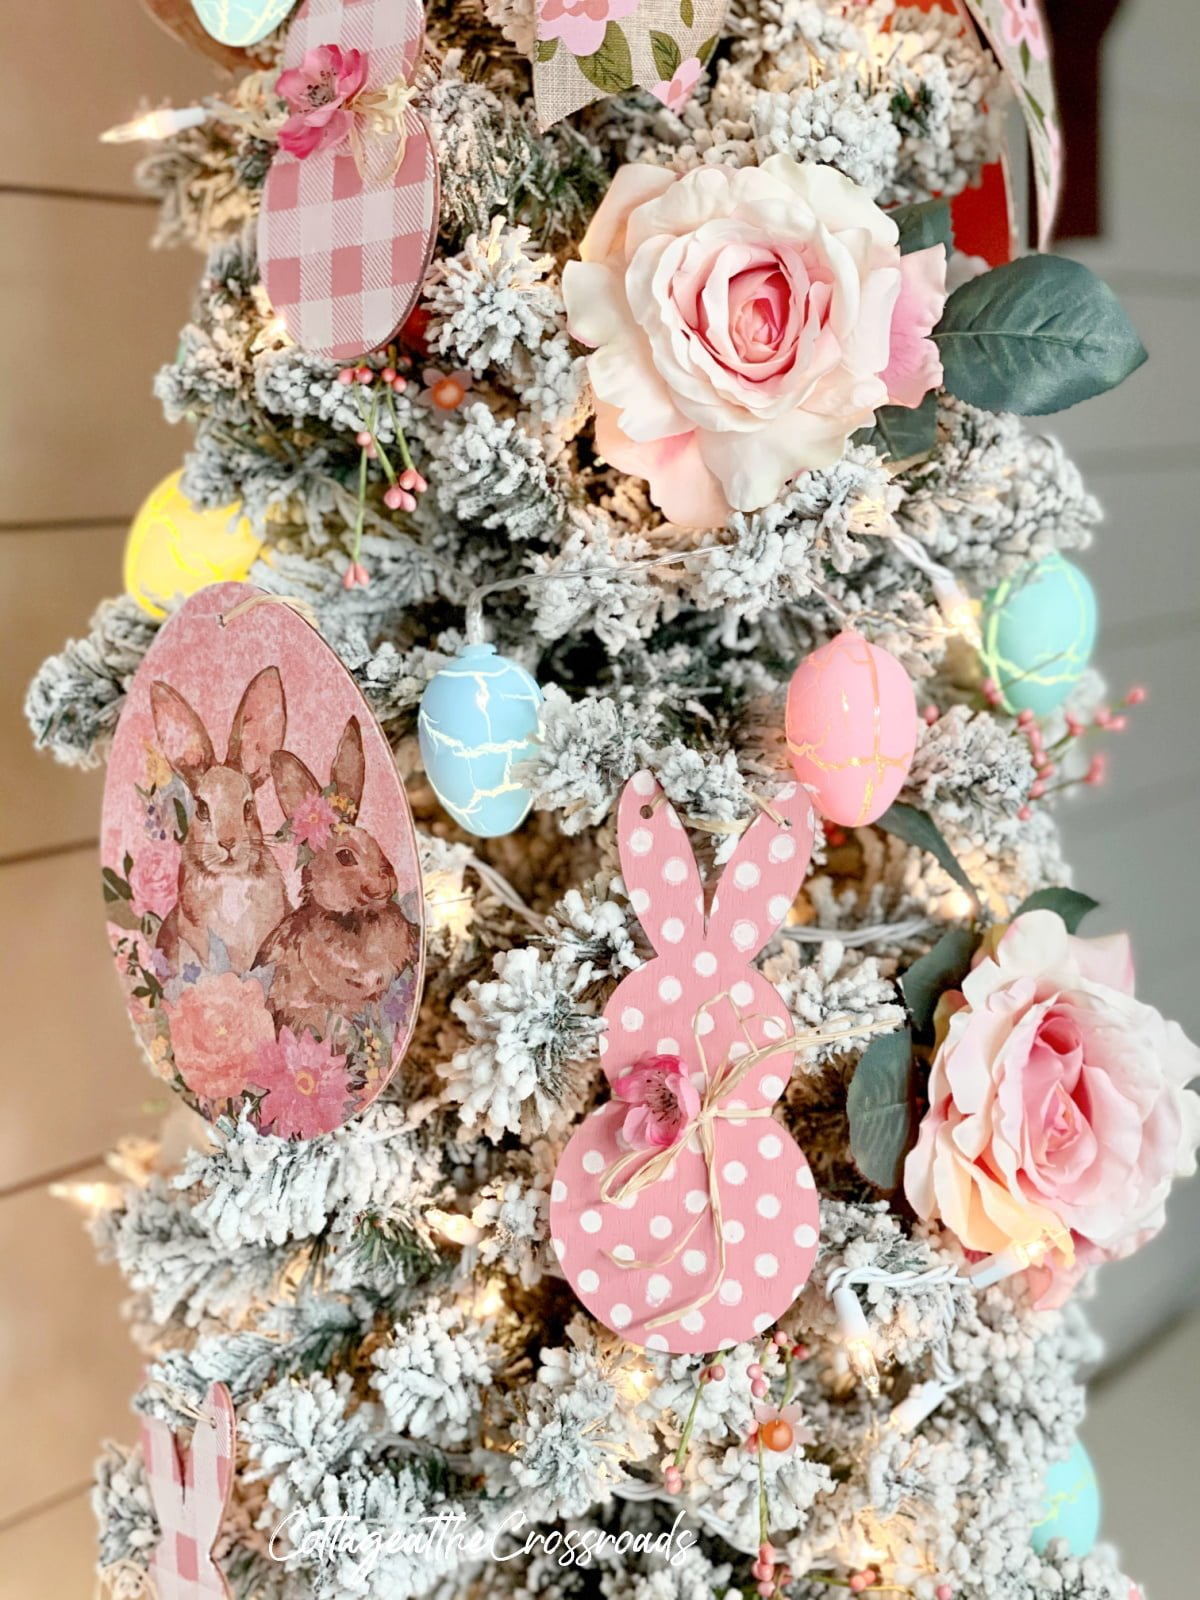 decorations on an Easter tree